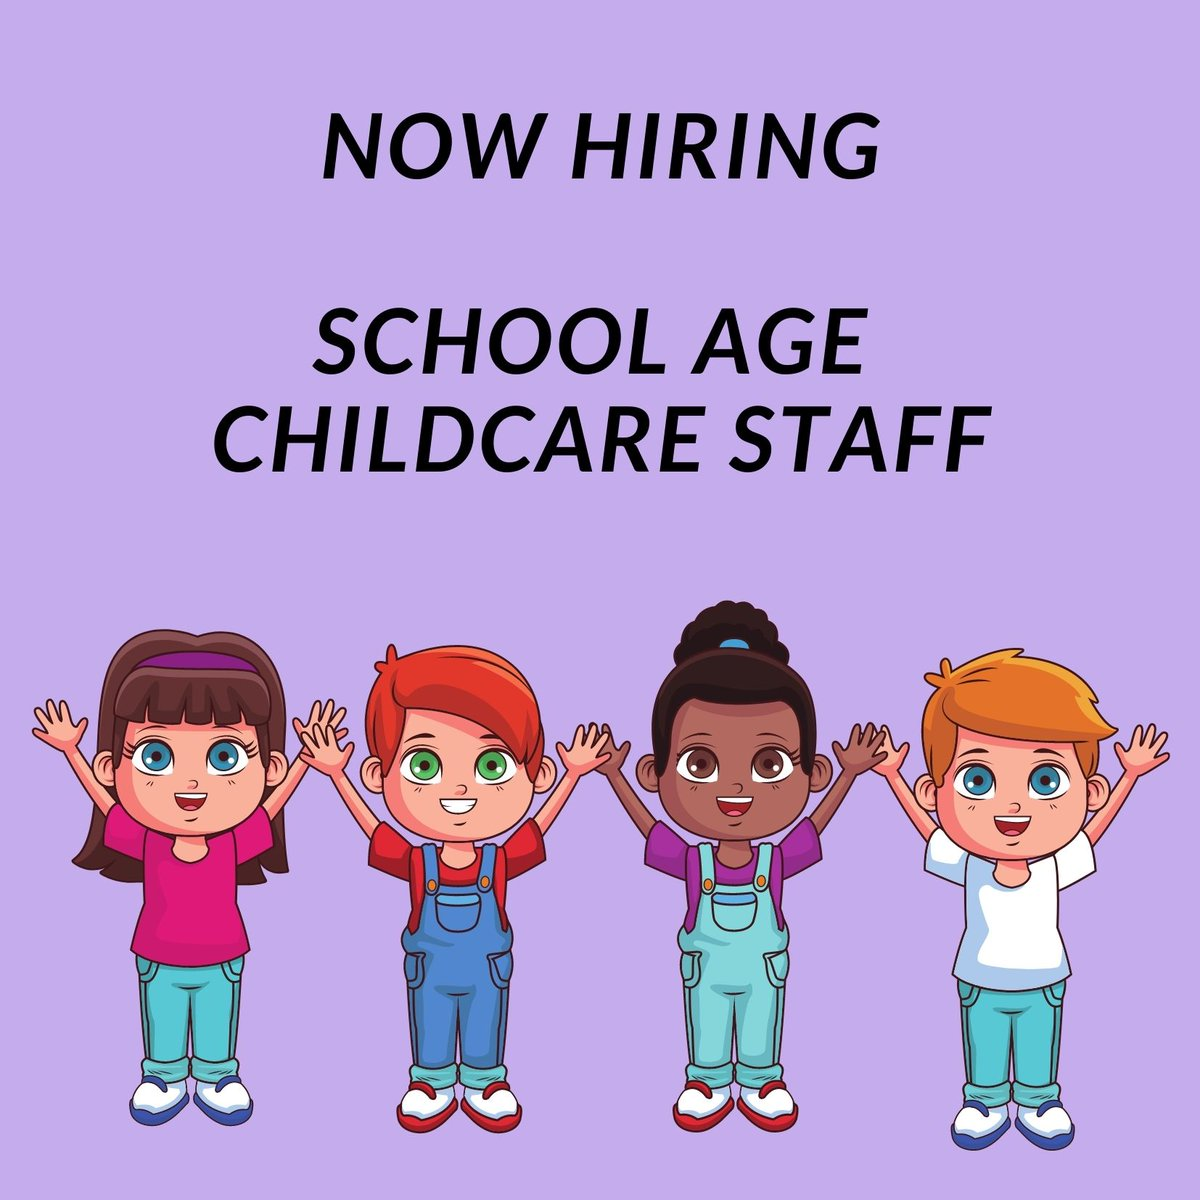 The City of Fairfax is now hiring school age childcare center staff. See job posting for details!